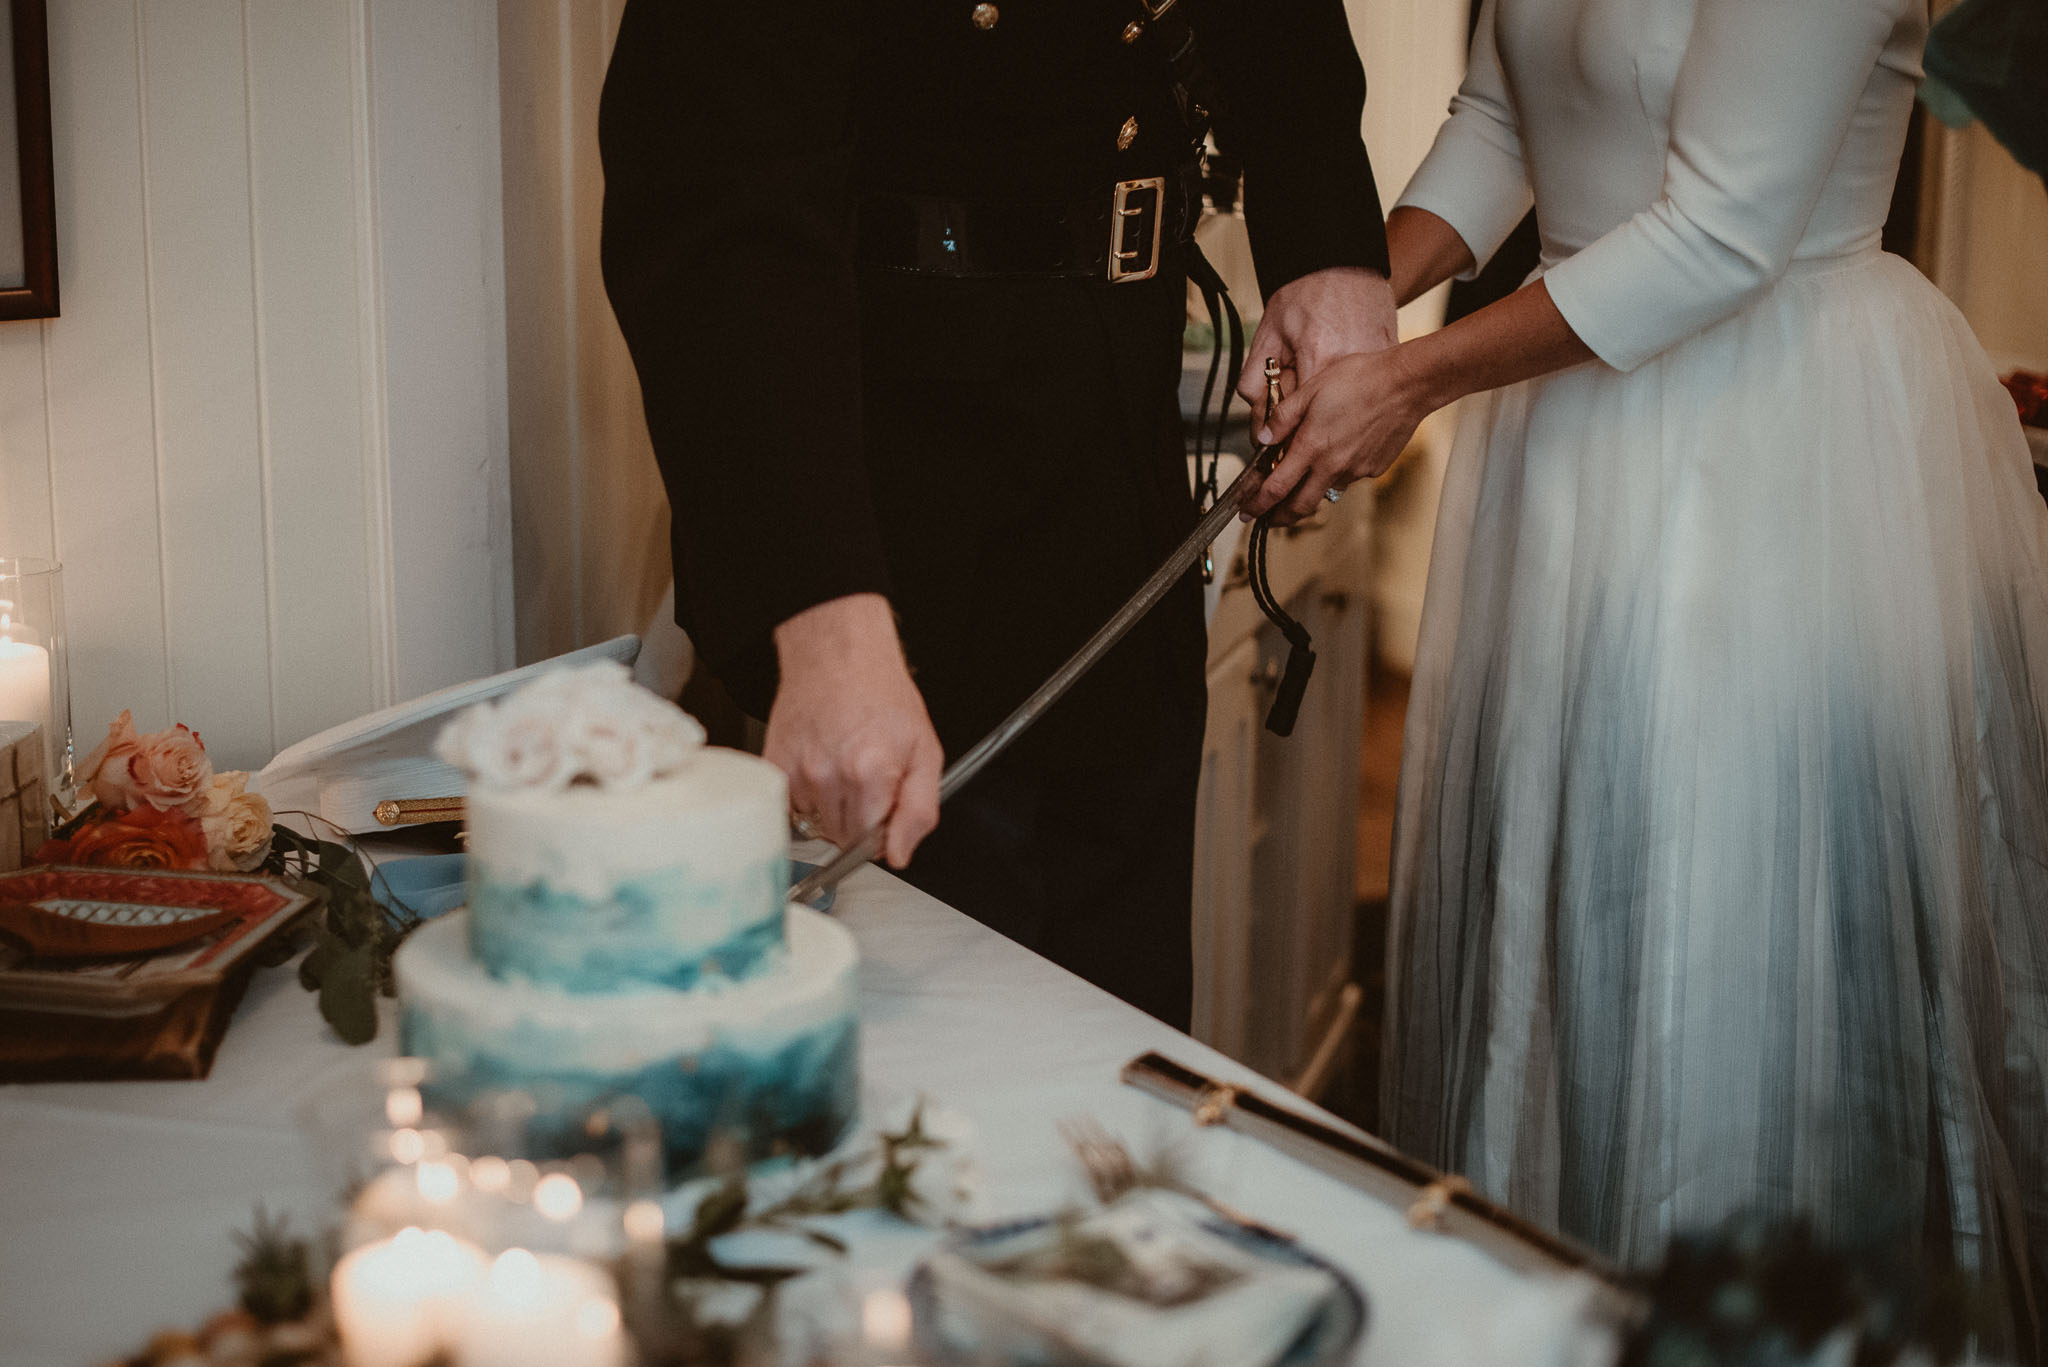 The couple cutting the wedding cake with the grooms sword.